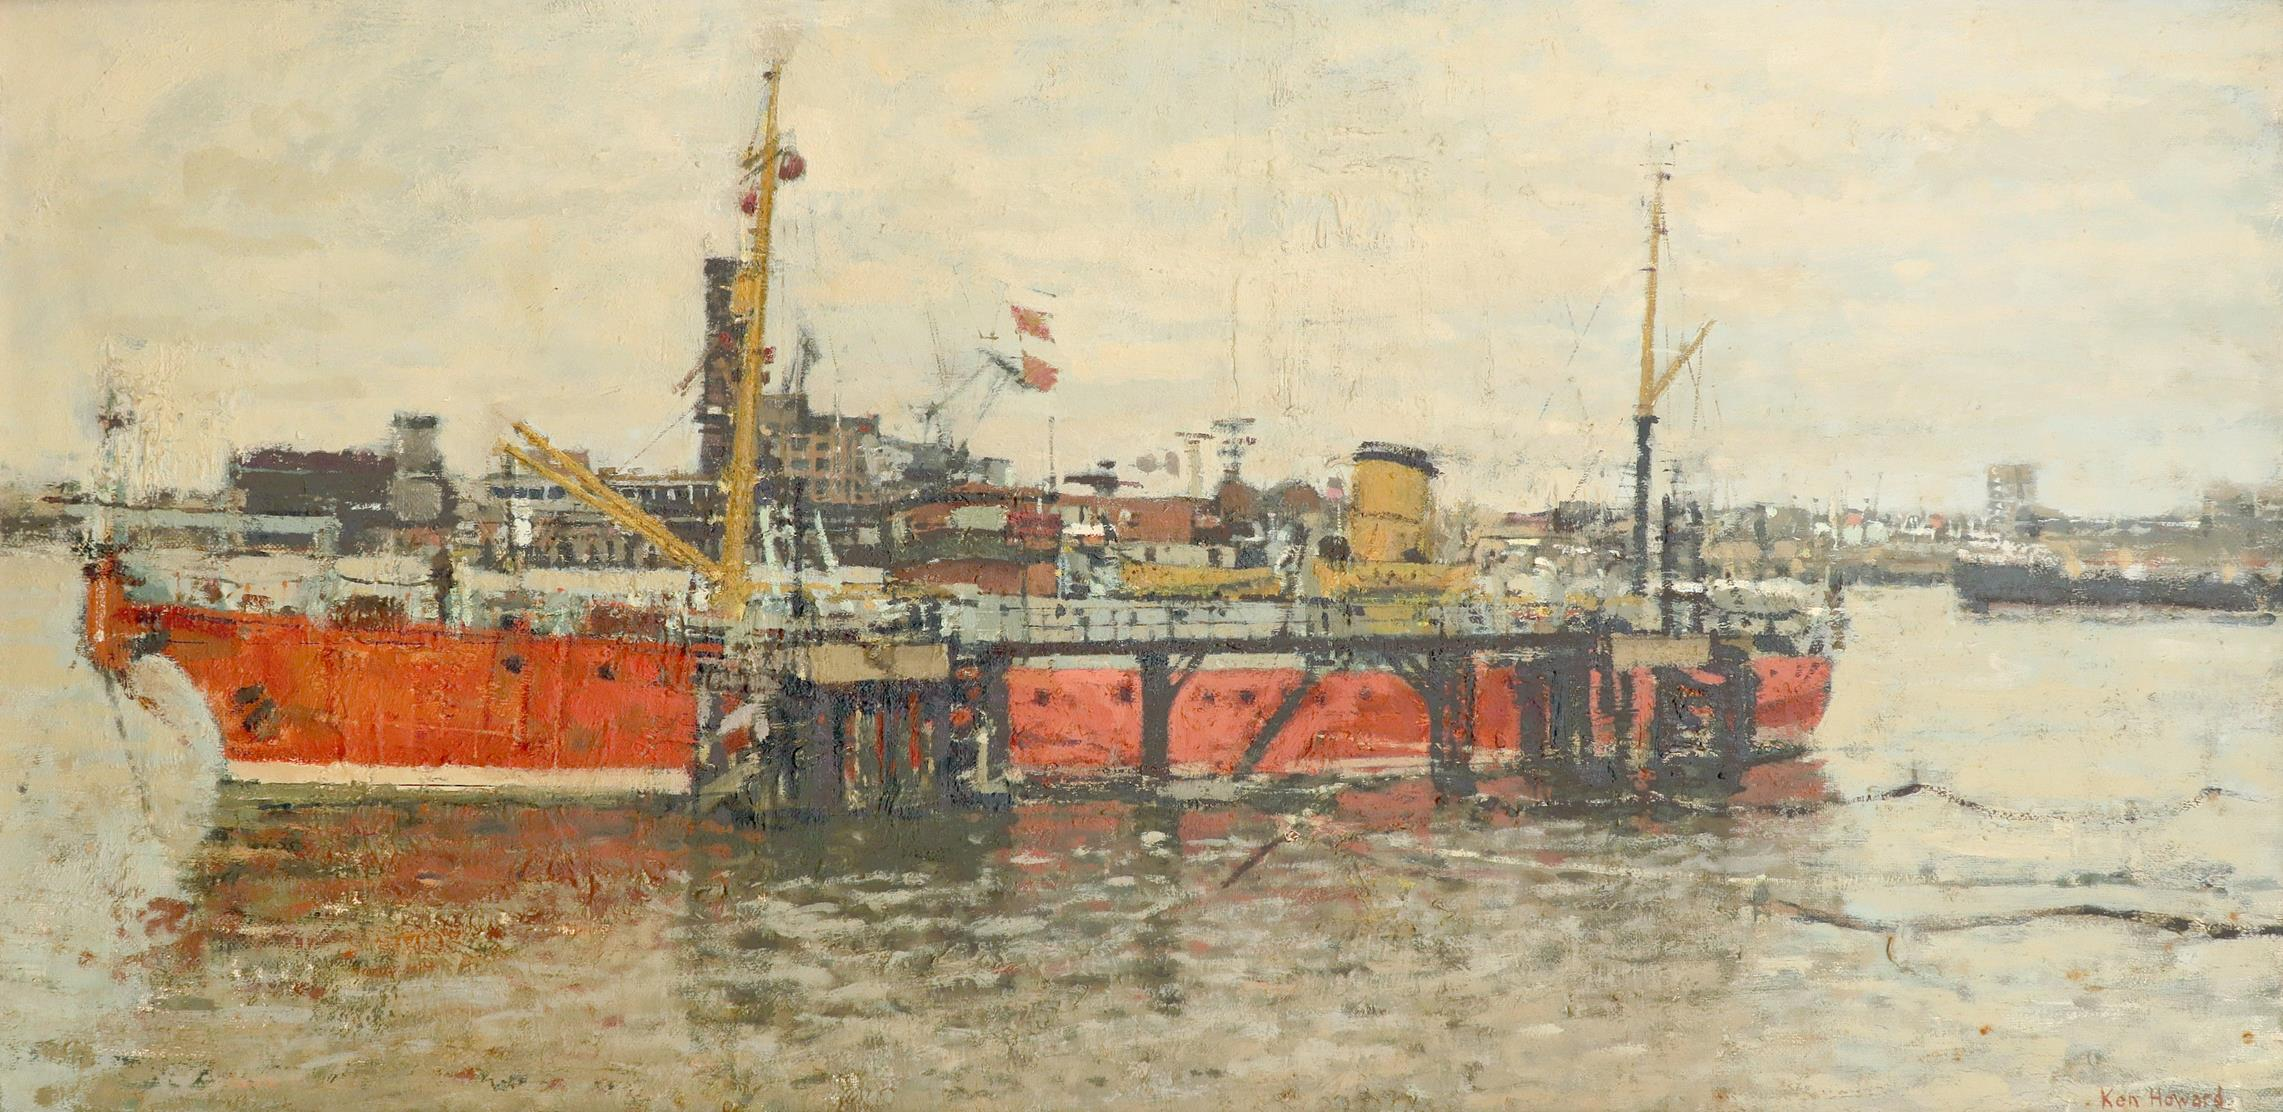 ‡Ken Howard OBE, RA (b.1932) The cable ship Iris moored at Greenwich Signed Ken Howard (lower right)